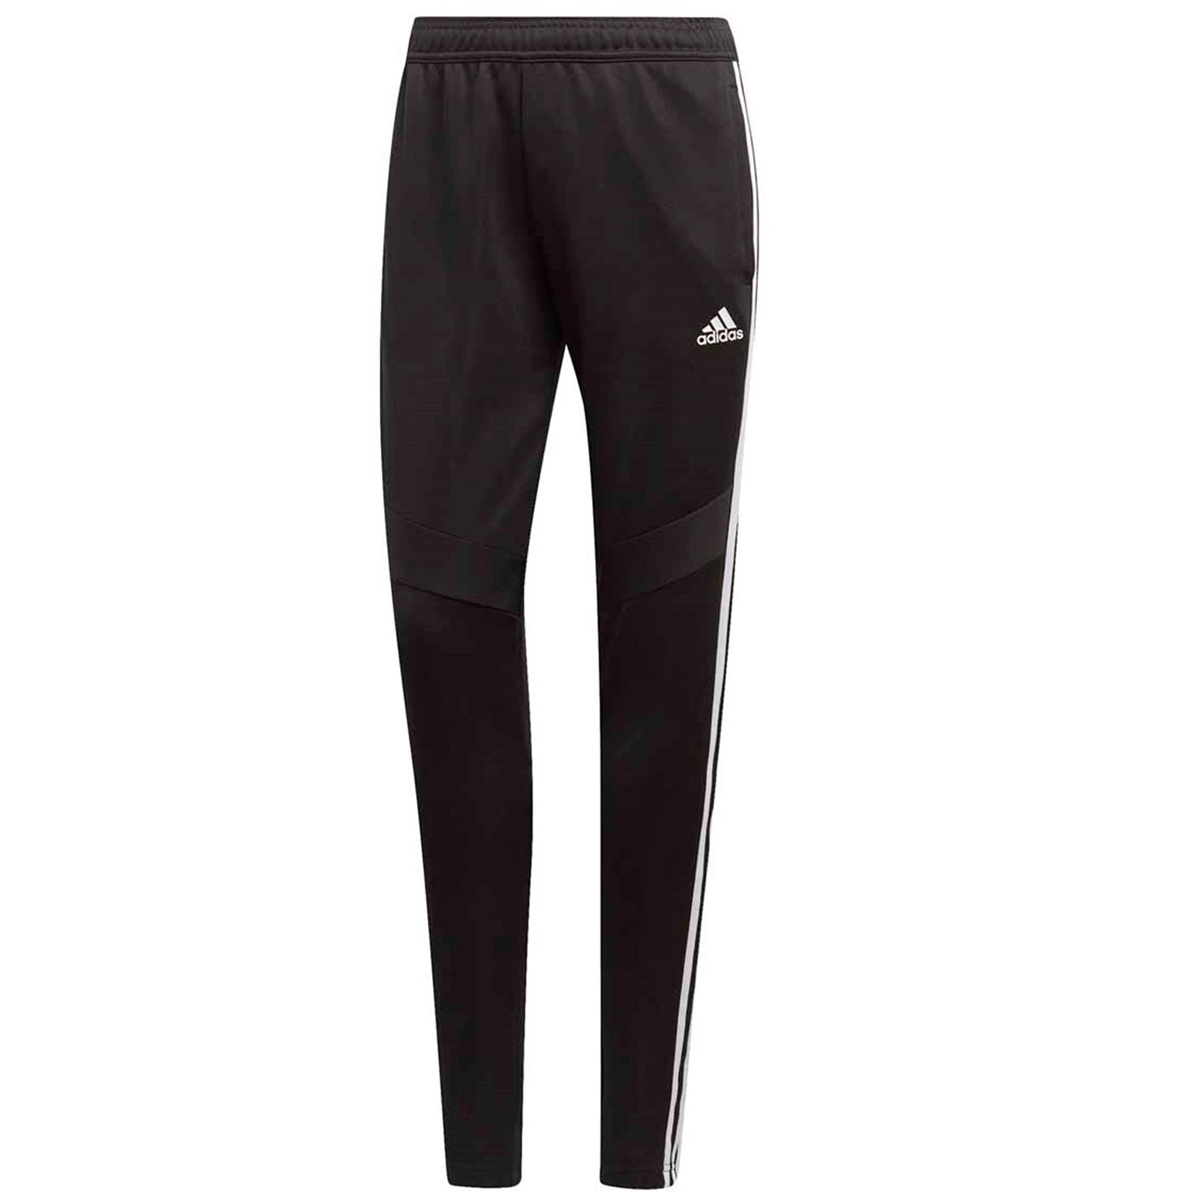 Adidas Tiro 19 Trainingsbroek Dames